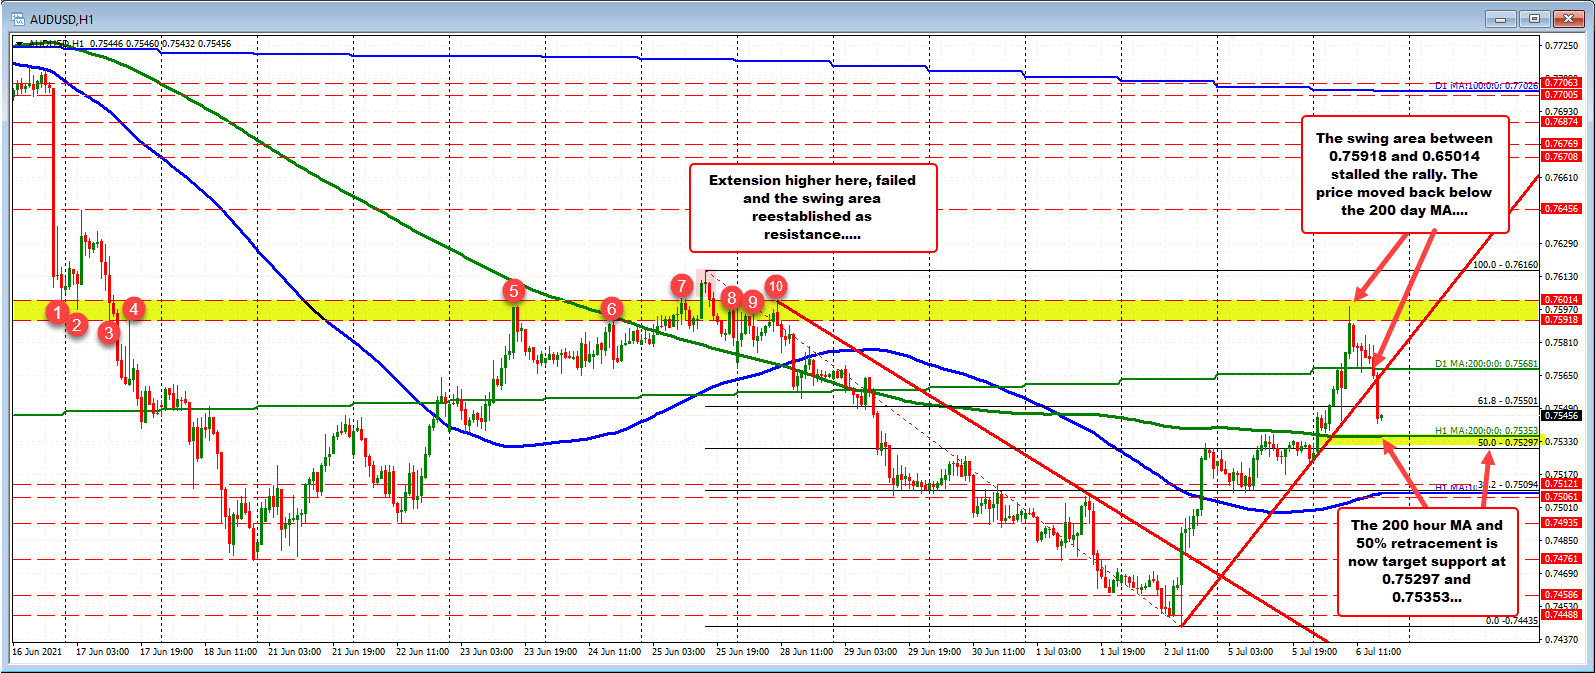 The high price today stalled at a swing area